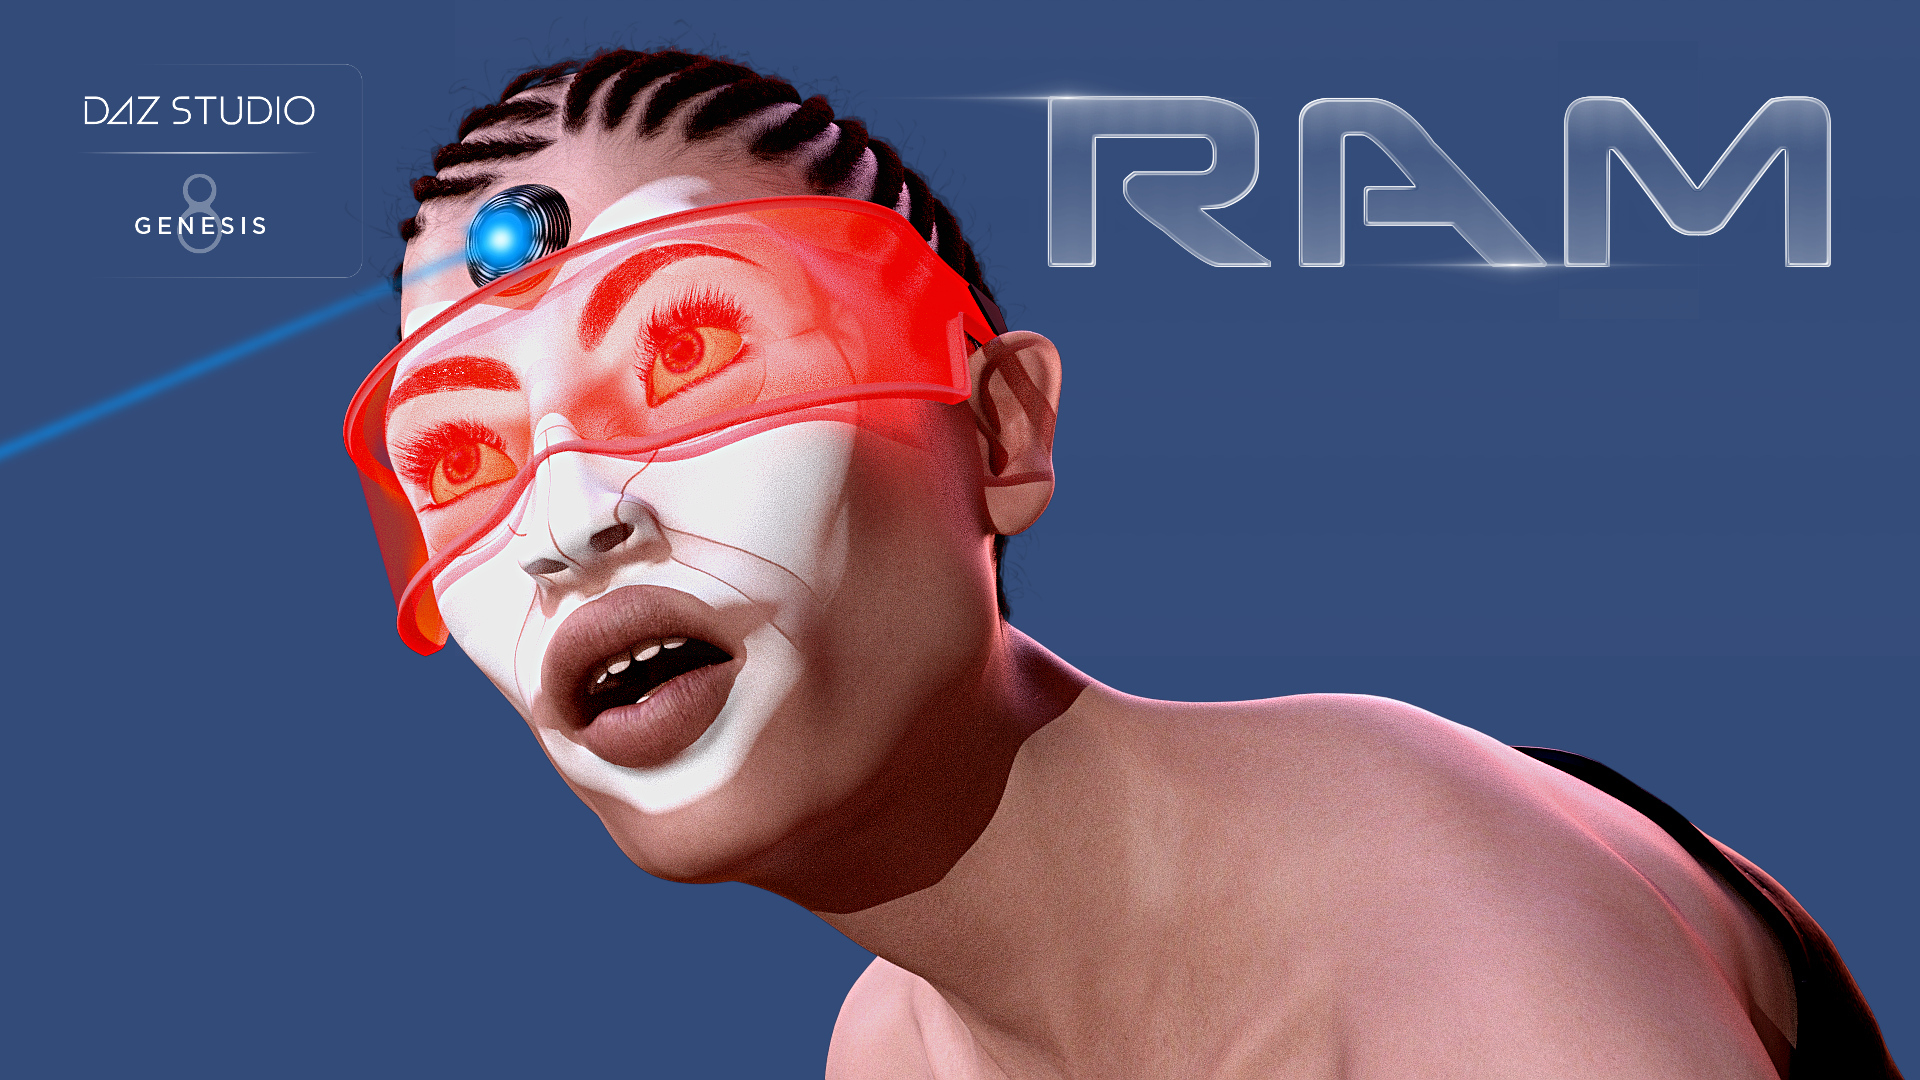 ram female genesis 8 3D model